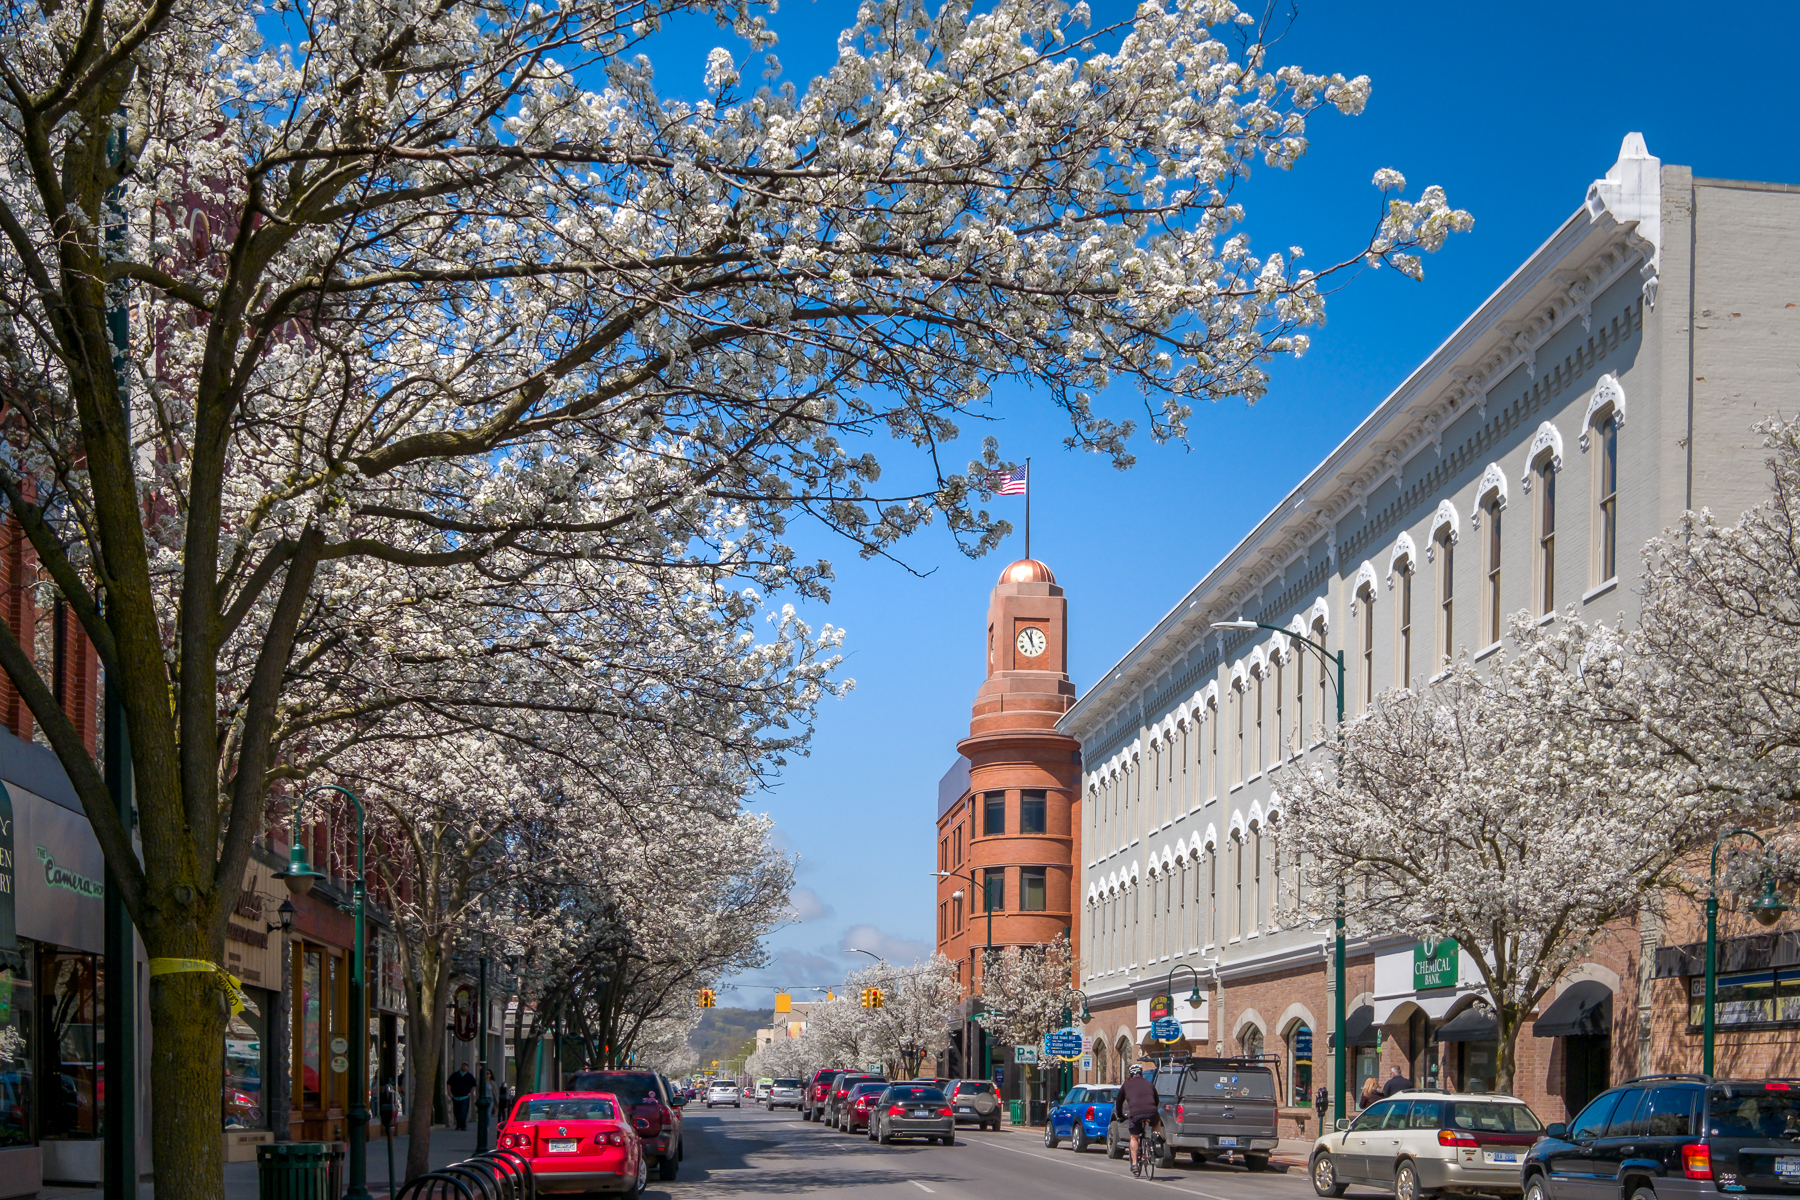 Looking west along Front Street, Traverse City, springtime with flowering trees